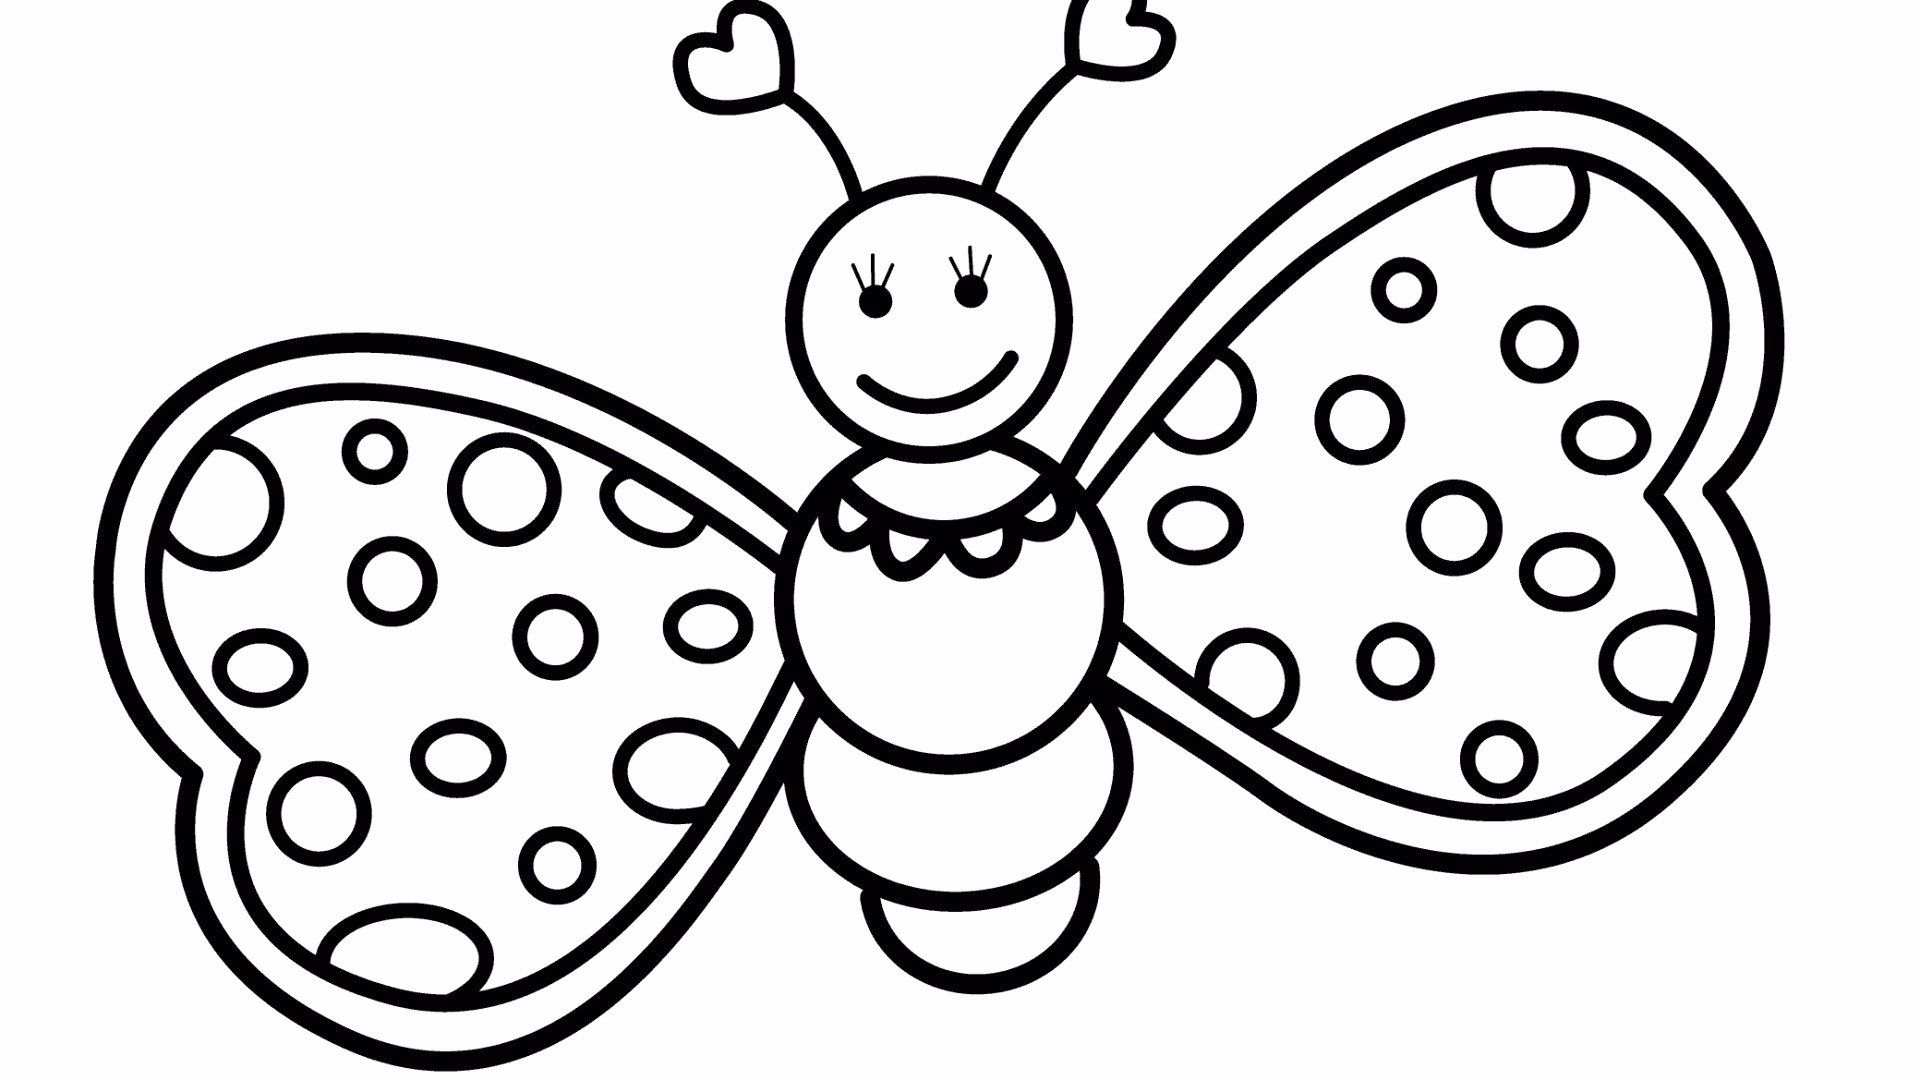 Butterflies Coloring Pages For Adults Beautiful Butterfly Coloring Printouts Beautiful Butterfly Coloring [ 1080 x 1920 Pixel ]